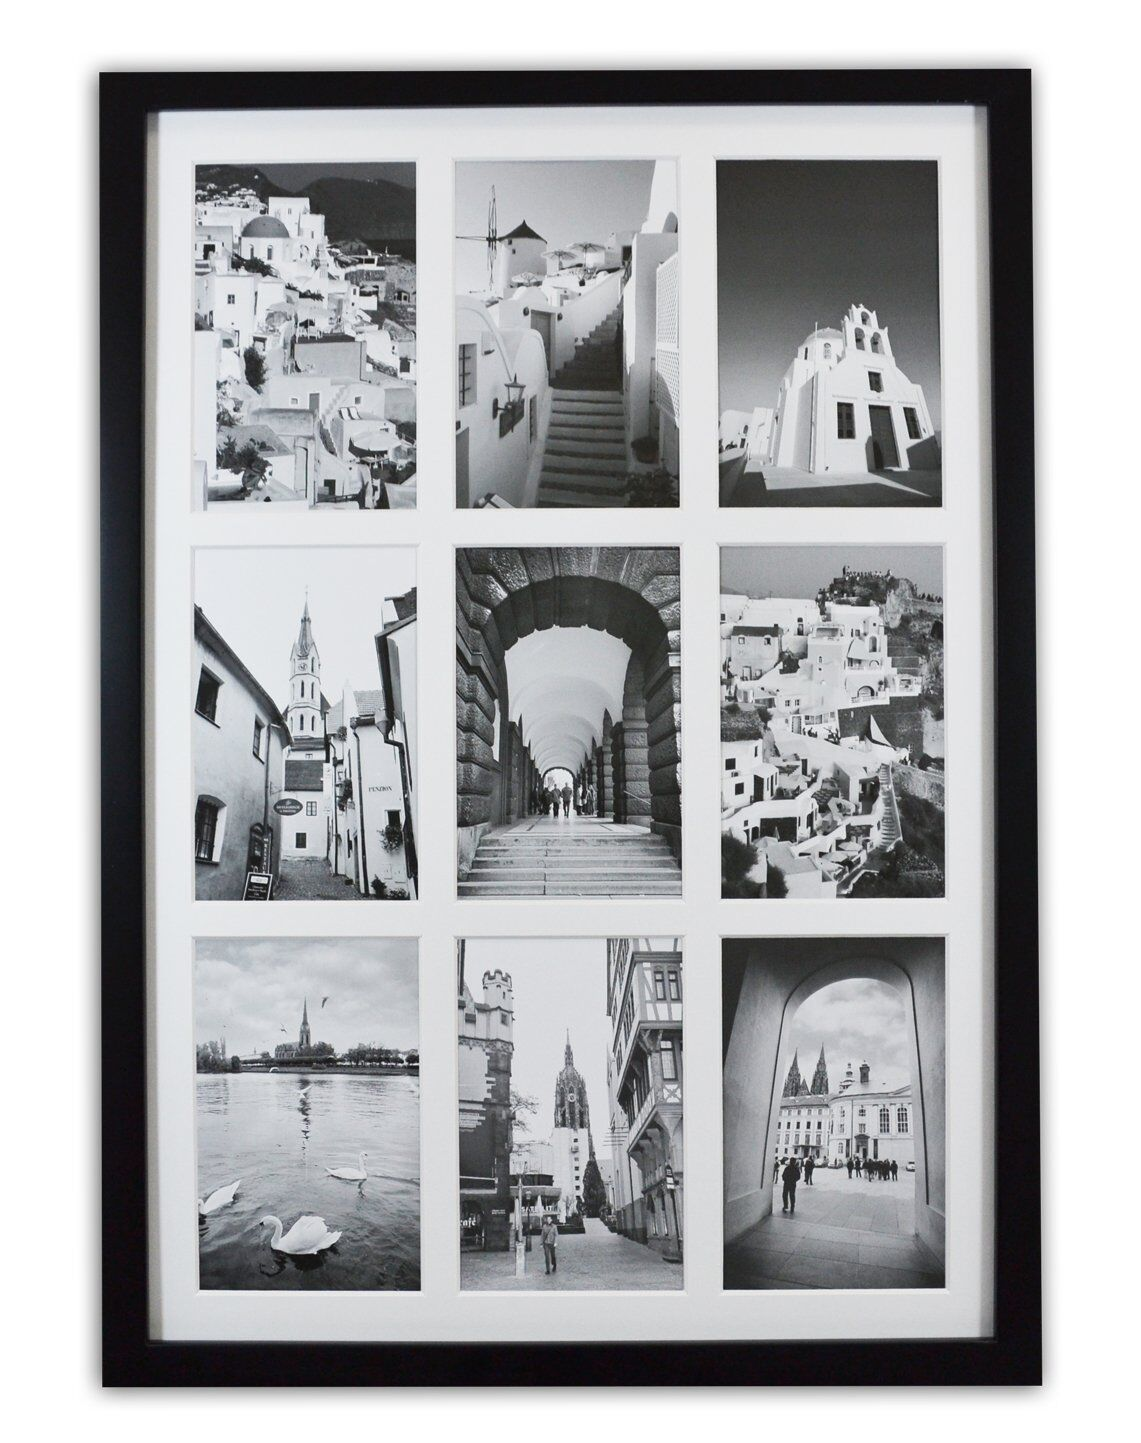 Golden State Art 13.6x19.7 Black Photo Wood Collage Frame With Real Glass  and White Displays (9) 4x6 Pictures